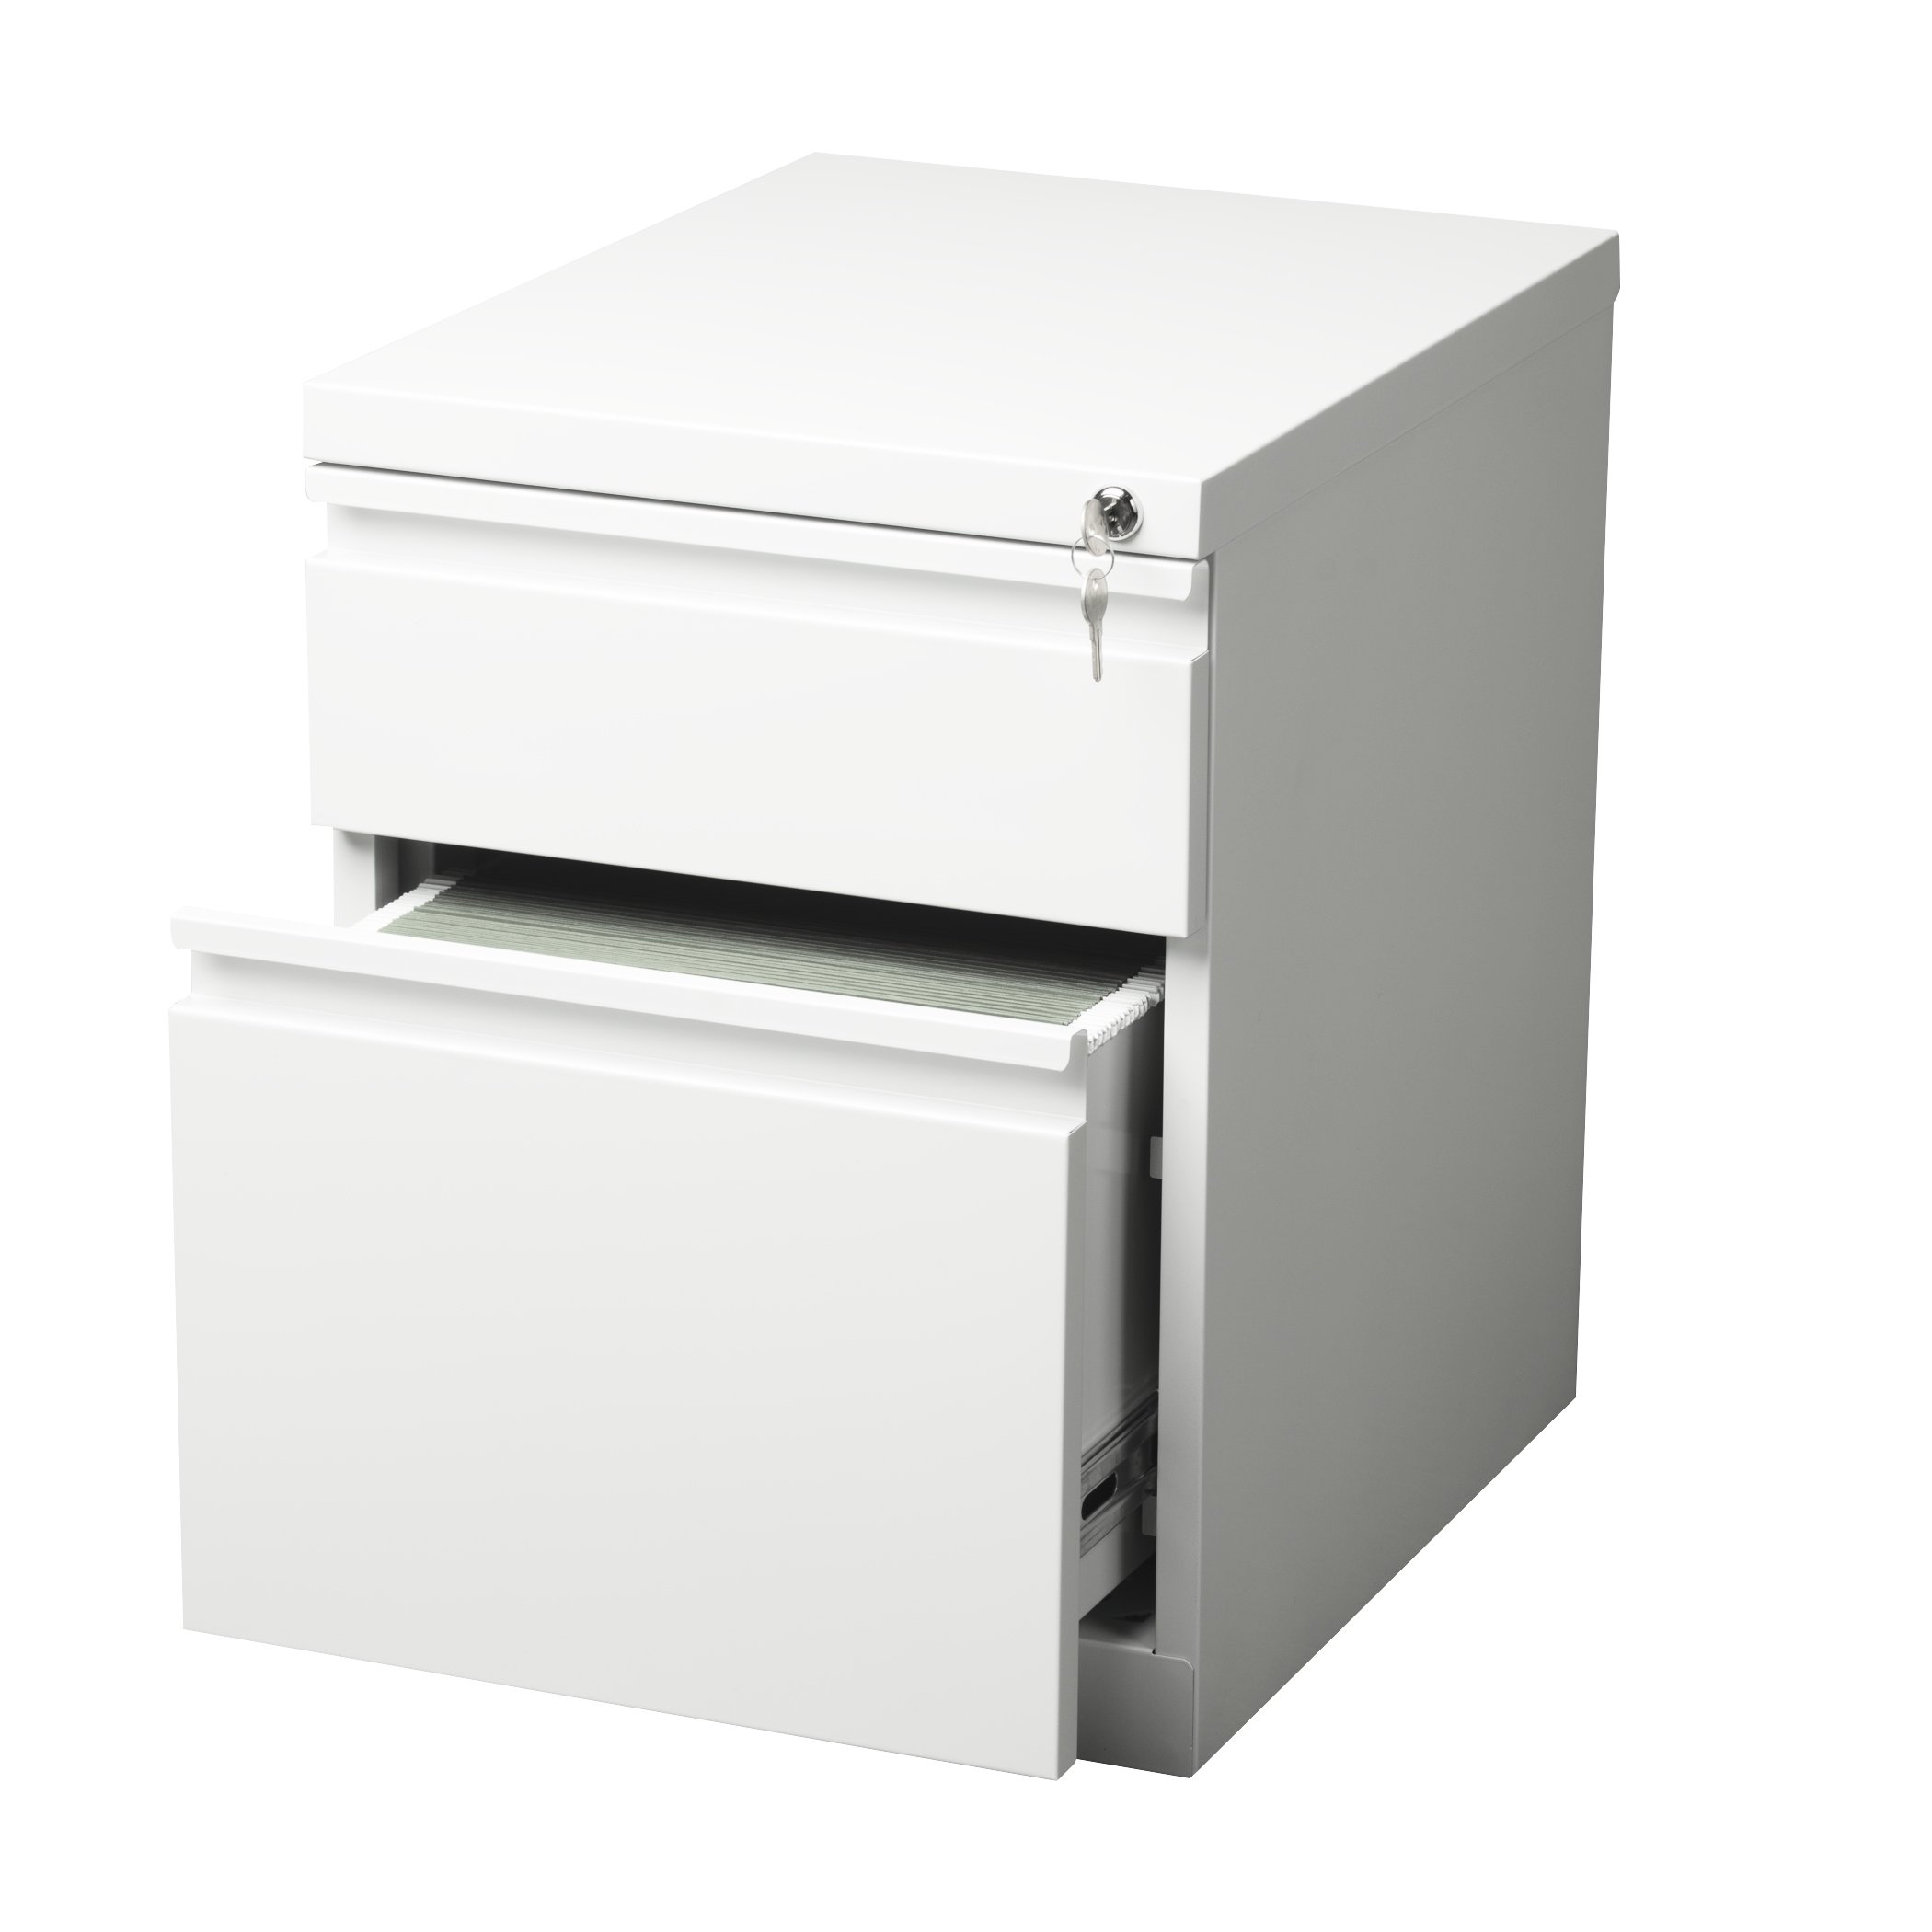 Office Dimensions 20'' File Cabinet w/ Storage Drawer, File Drawer and Concealed Wheels